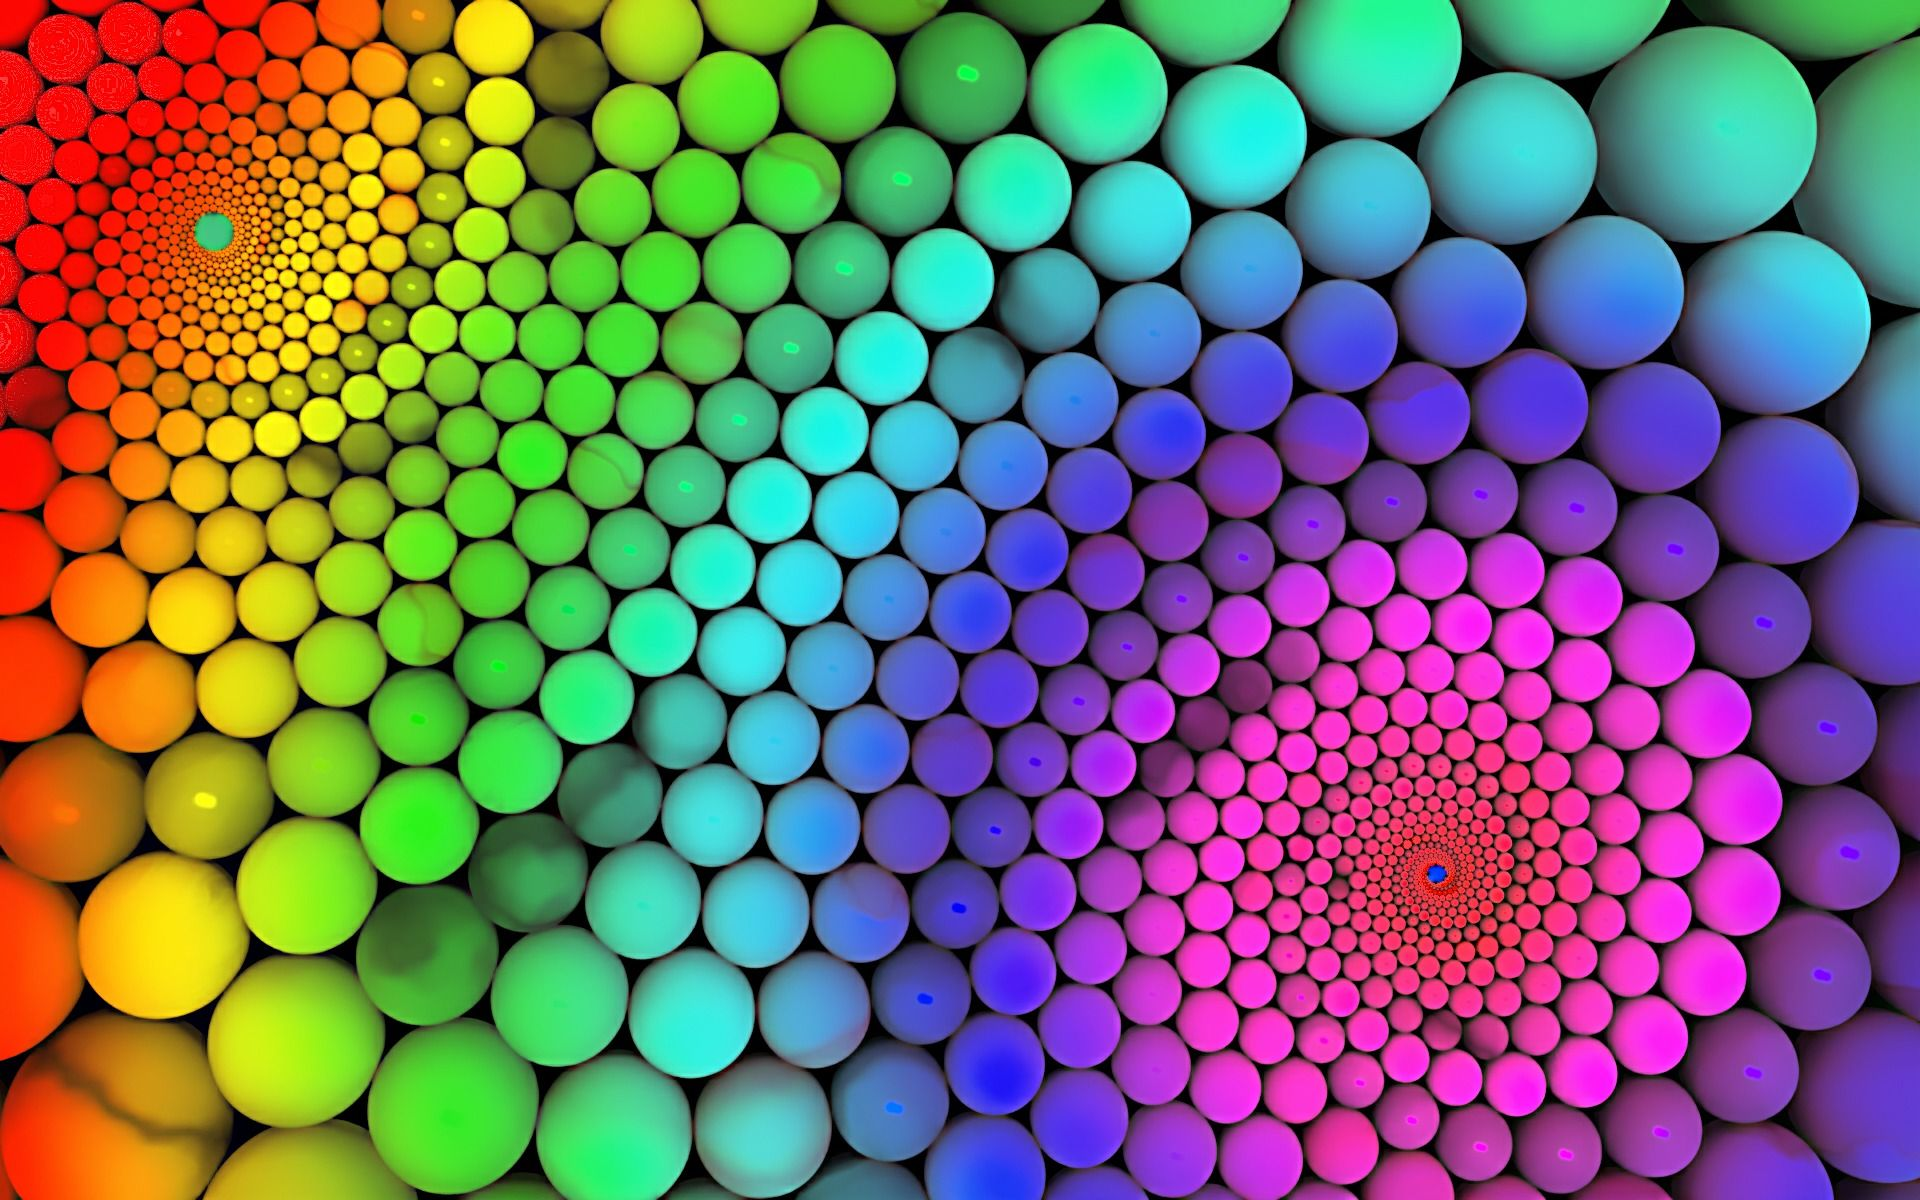 Cool Colorful 3D Rainbow Wallpaper HD 4 High Resolution Full Size